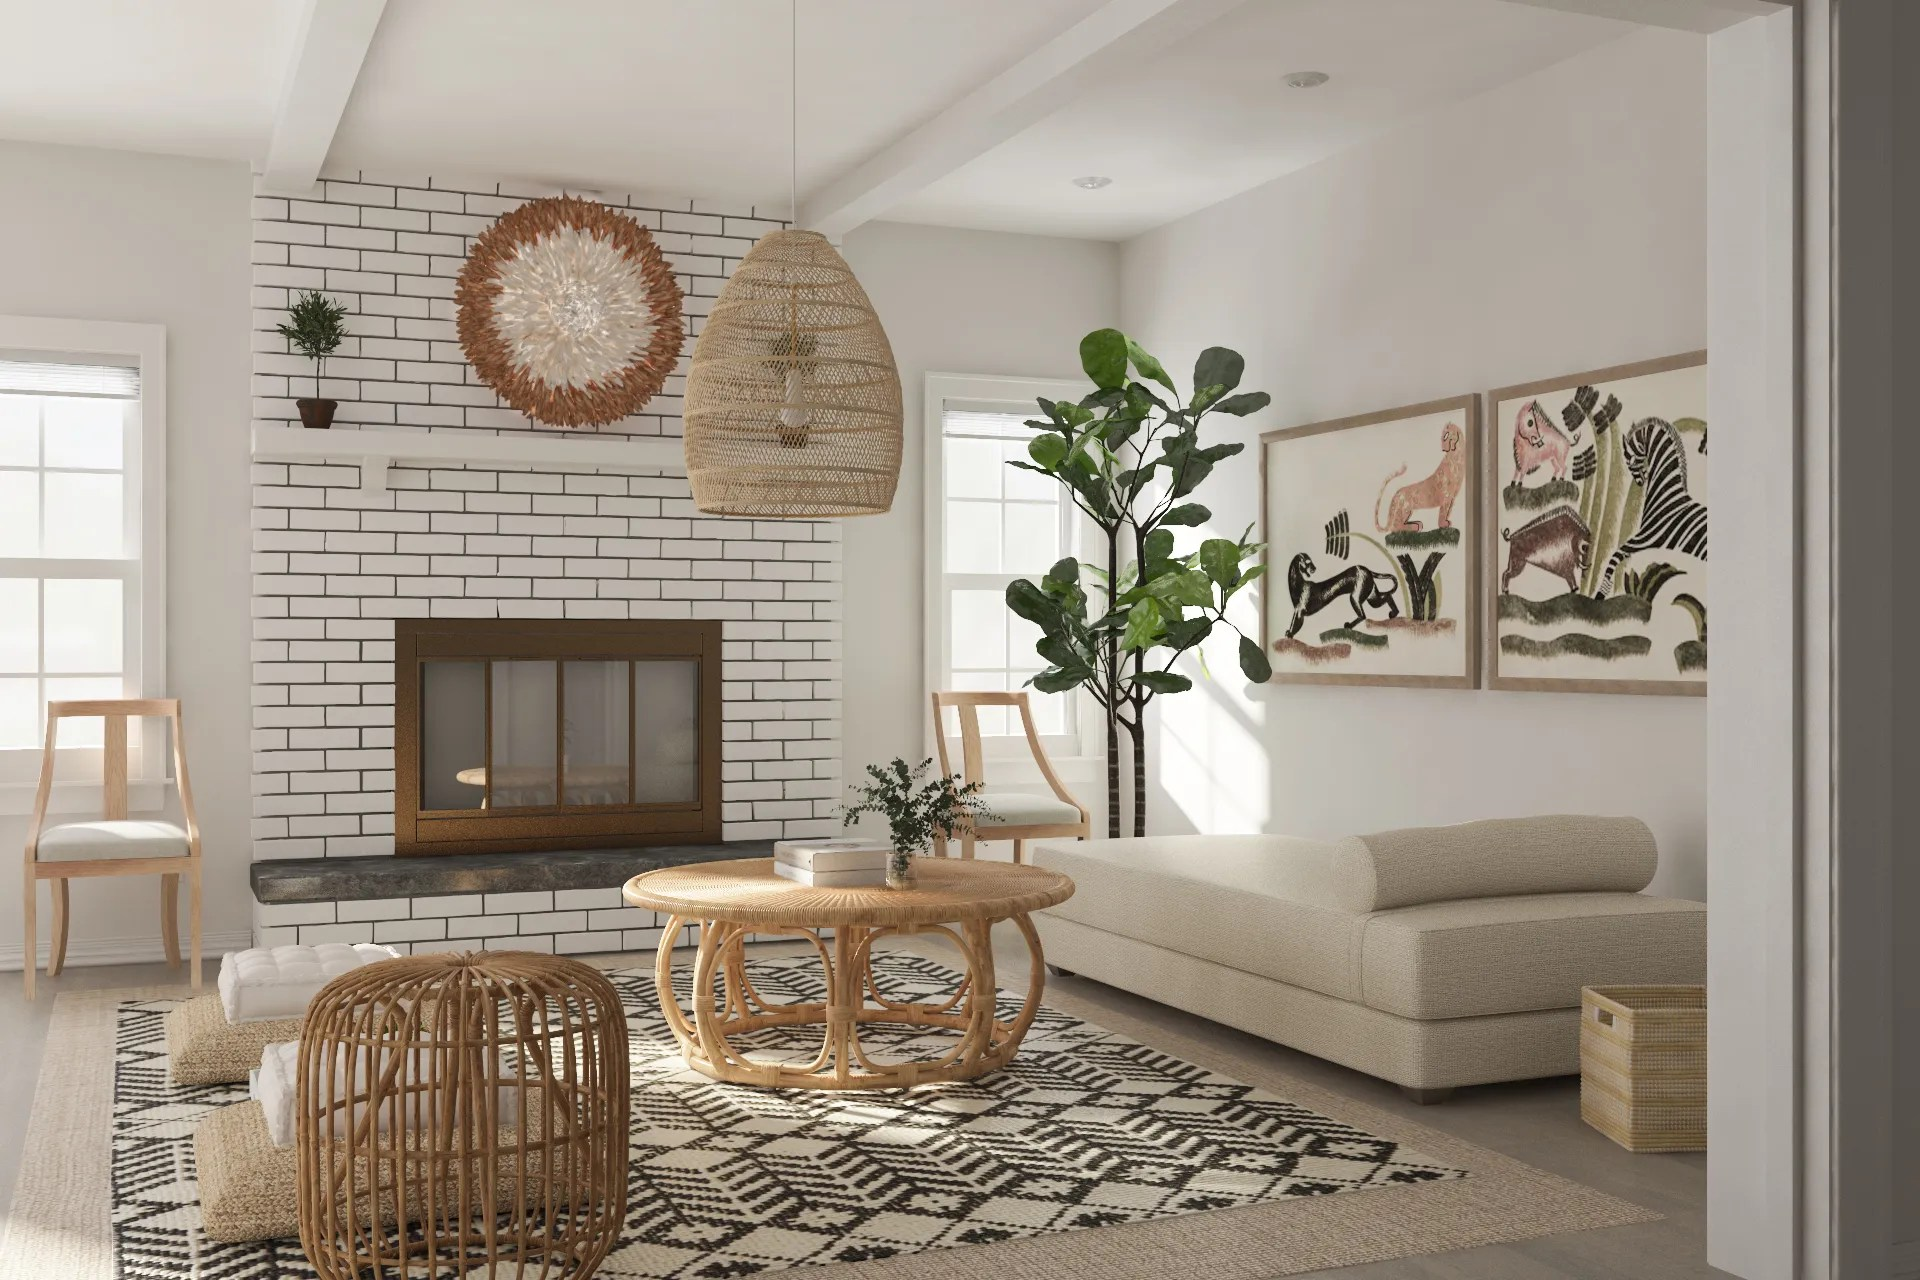 living room couch and 2 chairs best color for walls asian paints how to design your without a sofa architectural digest